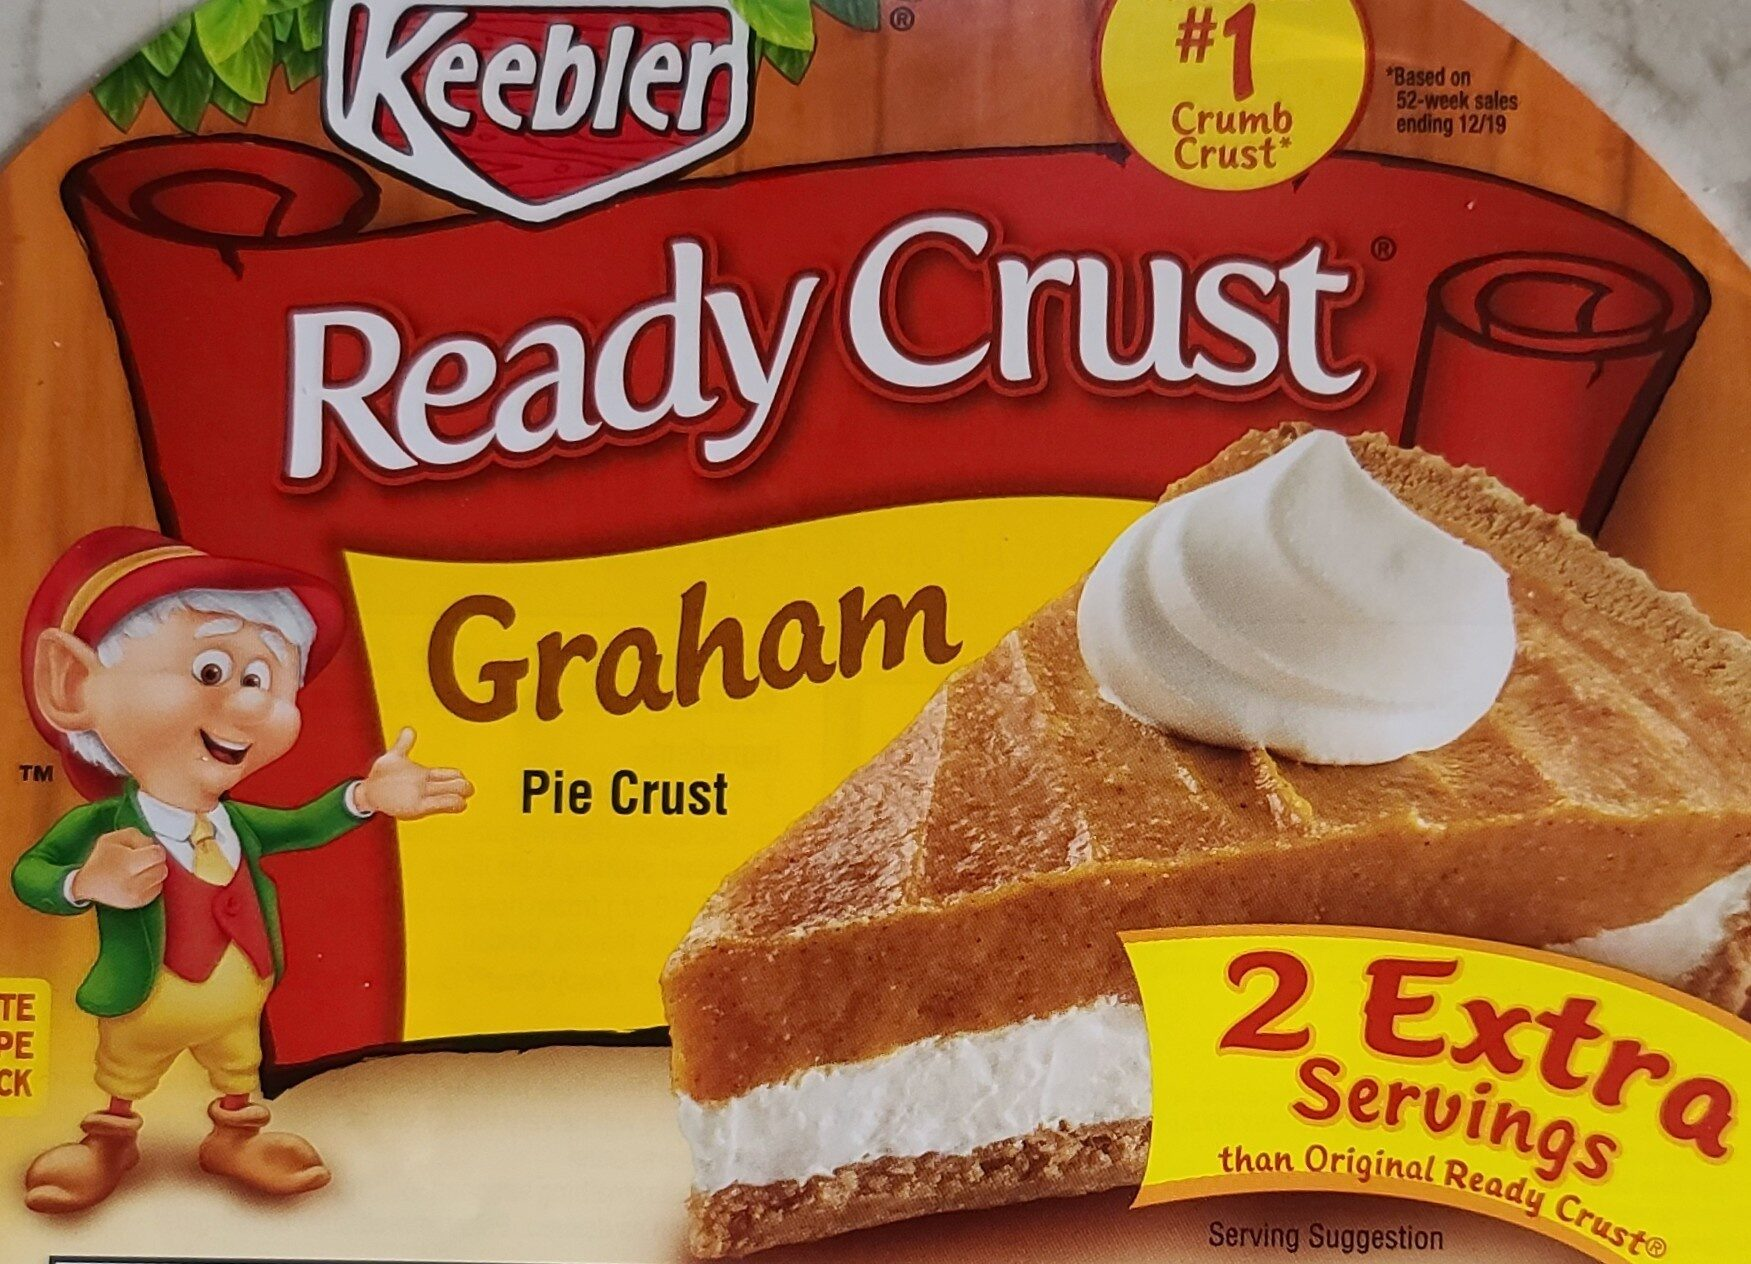 Graham pie crust - Produit - en